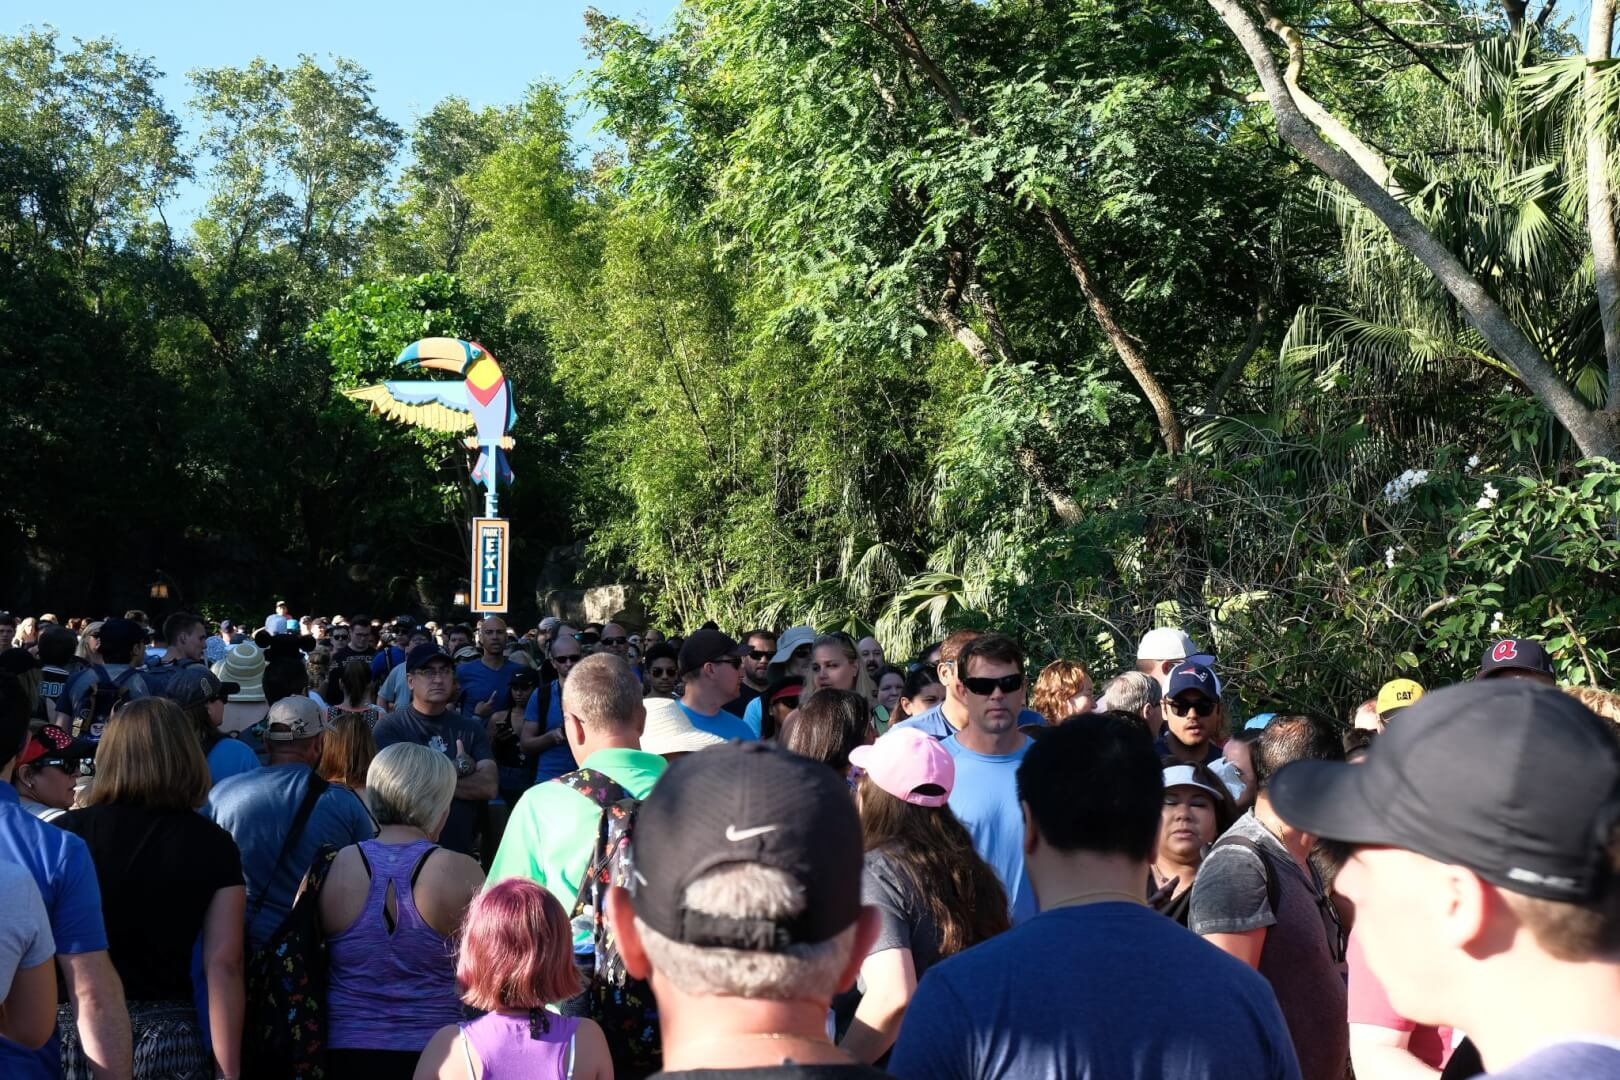 Technically You Can Finally Experience The New Themed Land Starting Today At Walt Disney Worlds Animal Kingdom But Additional Visitors This Morning Are